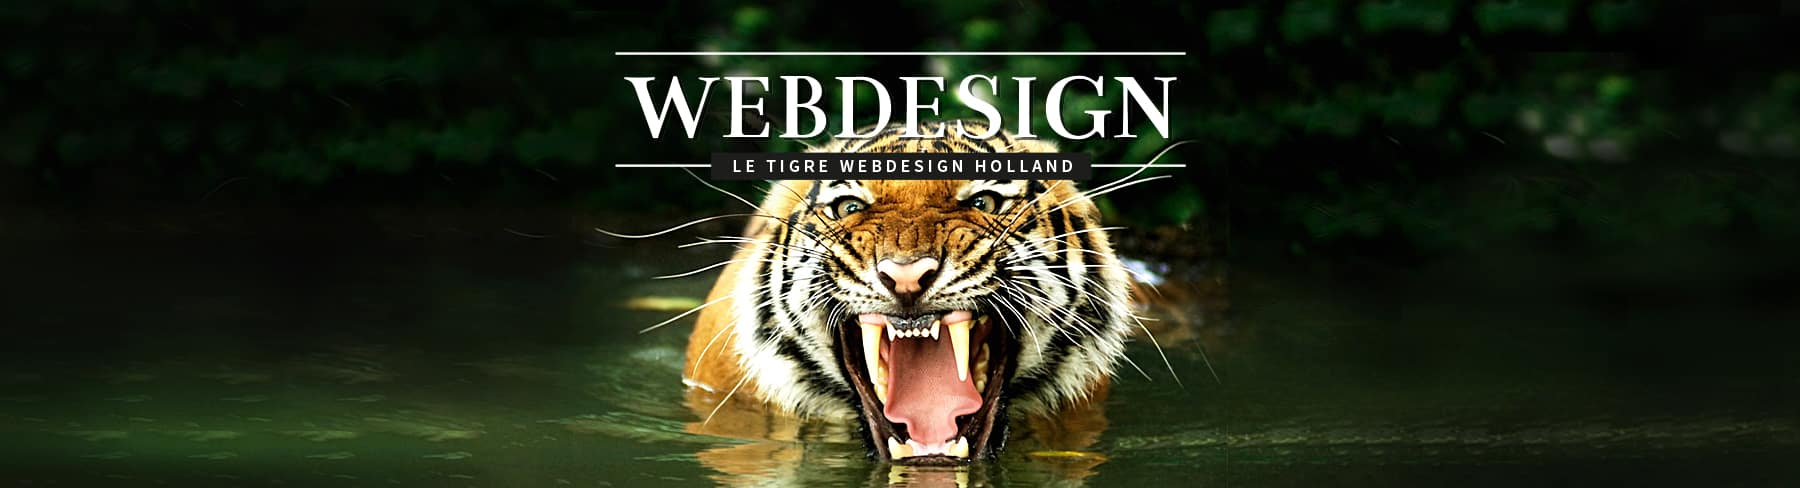 Webdesign Holland - websites maken die scoren in Google!